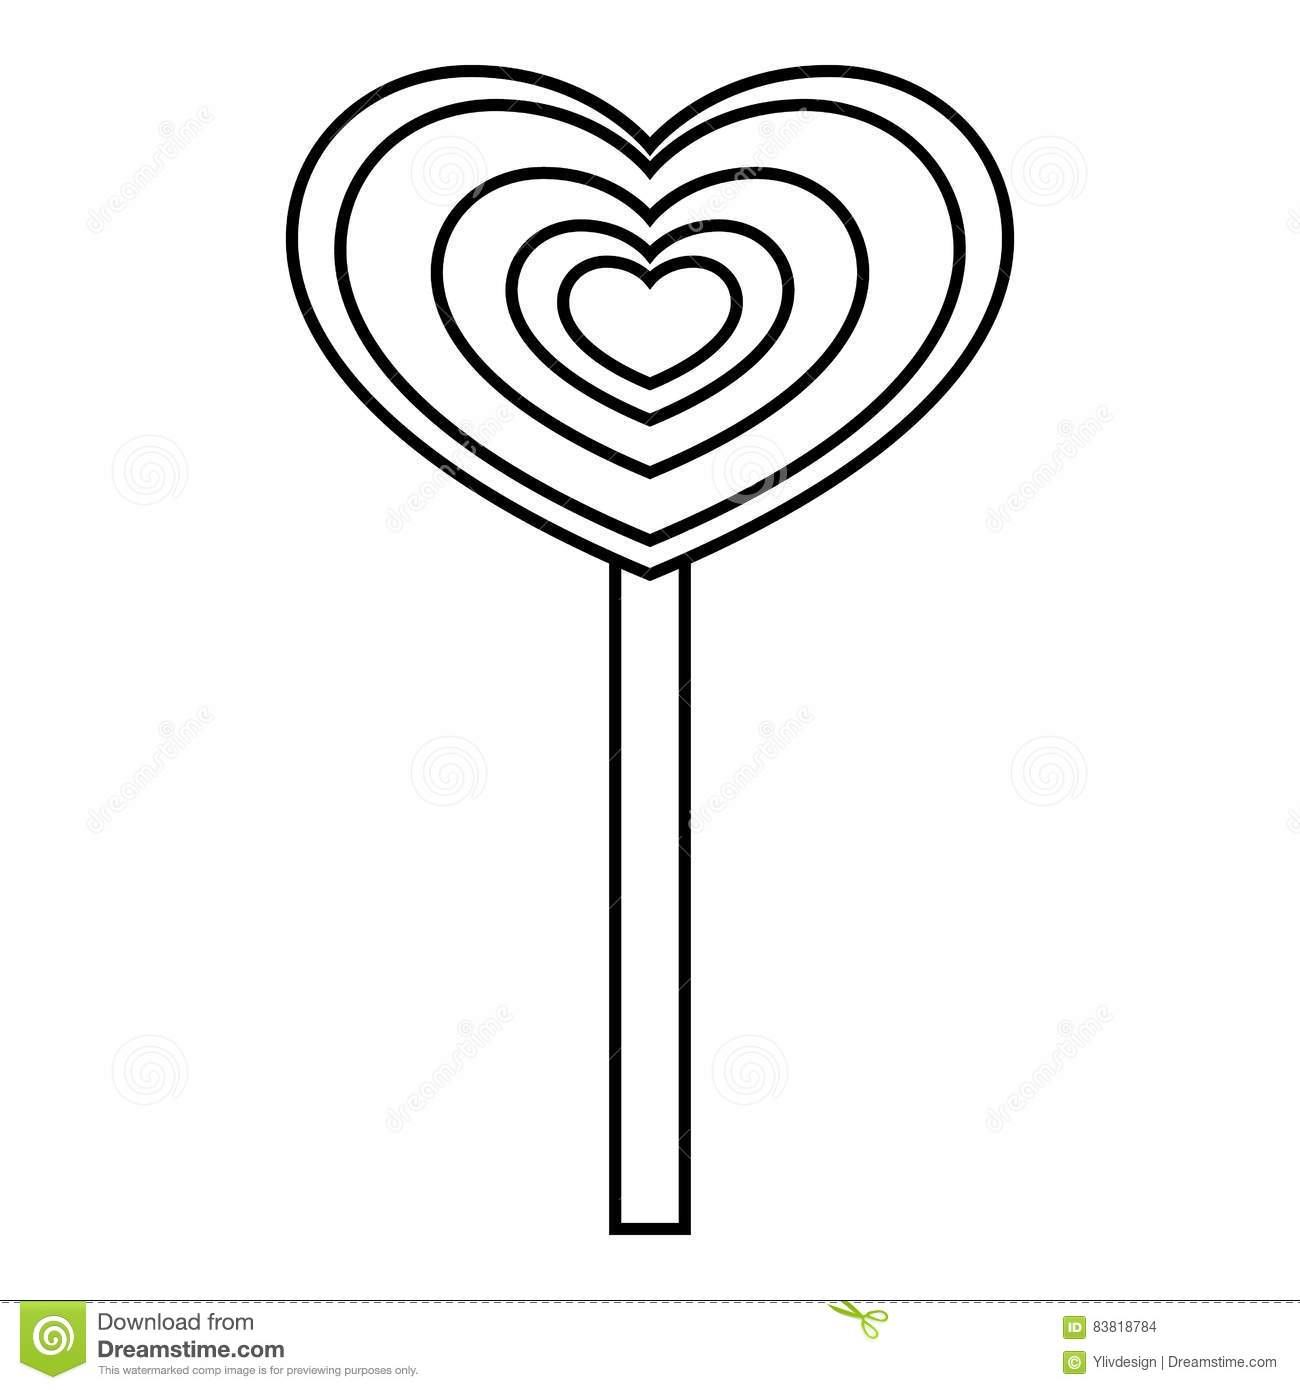 Heart Candy Icon, Outline Style Stock Vector - Illustration of ... for Clipart Lollipop Black And White  555kxo